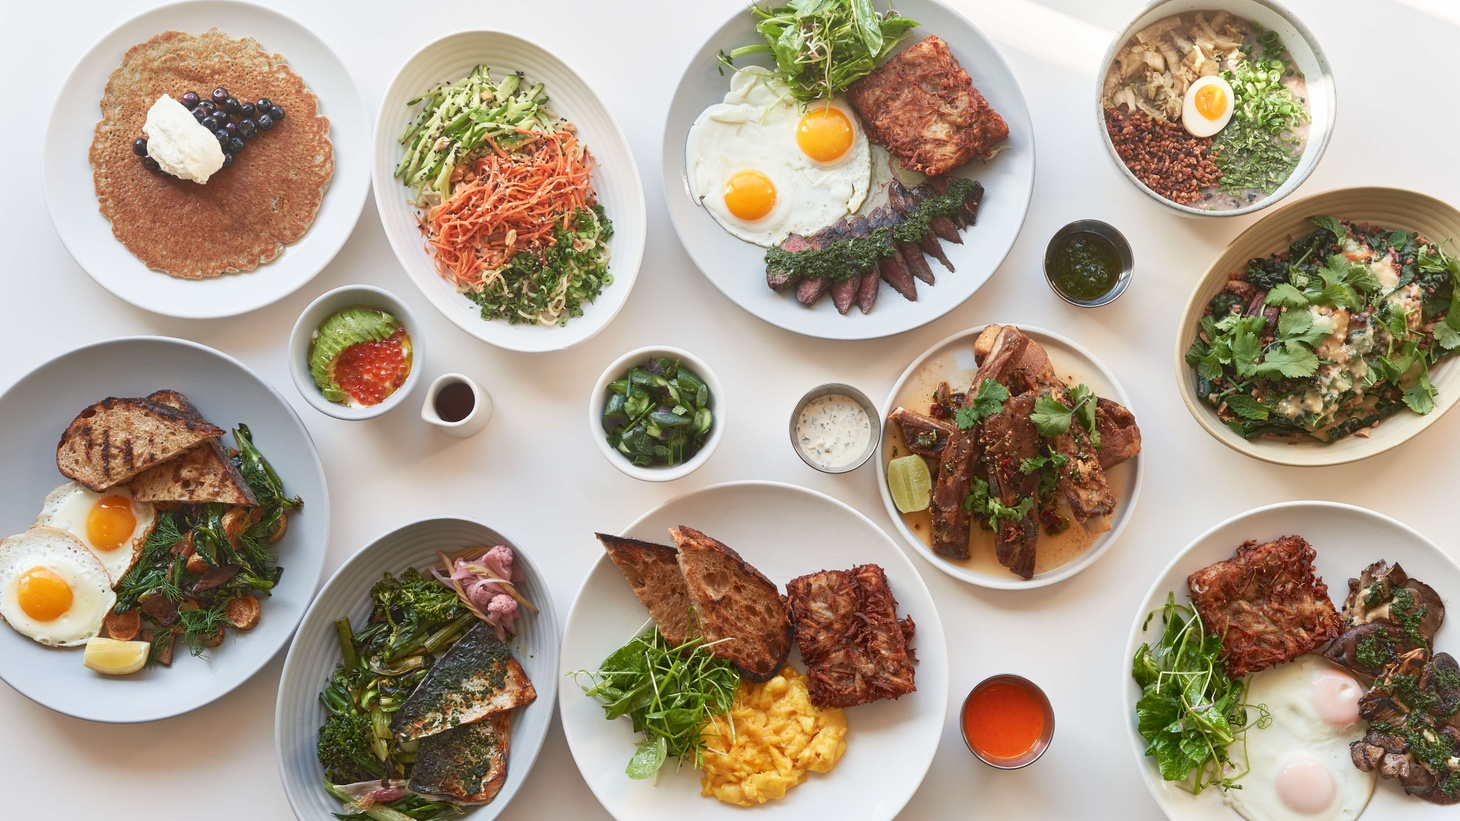 Chef Chris Yang explains that his approach to the pandemic was experimental, offering meals at different price points and gauging the public's interest in foods he made at home, such as his Thanksgiving prime rib.